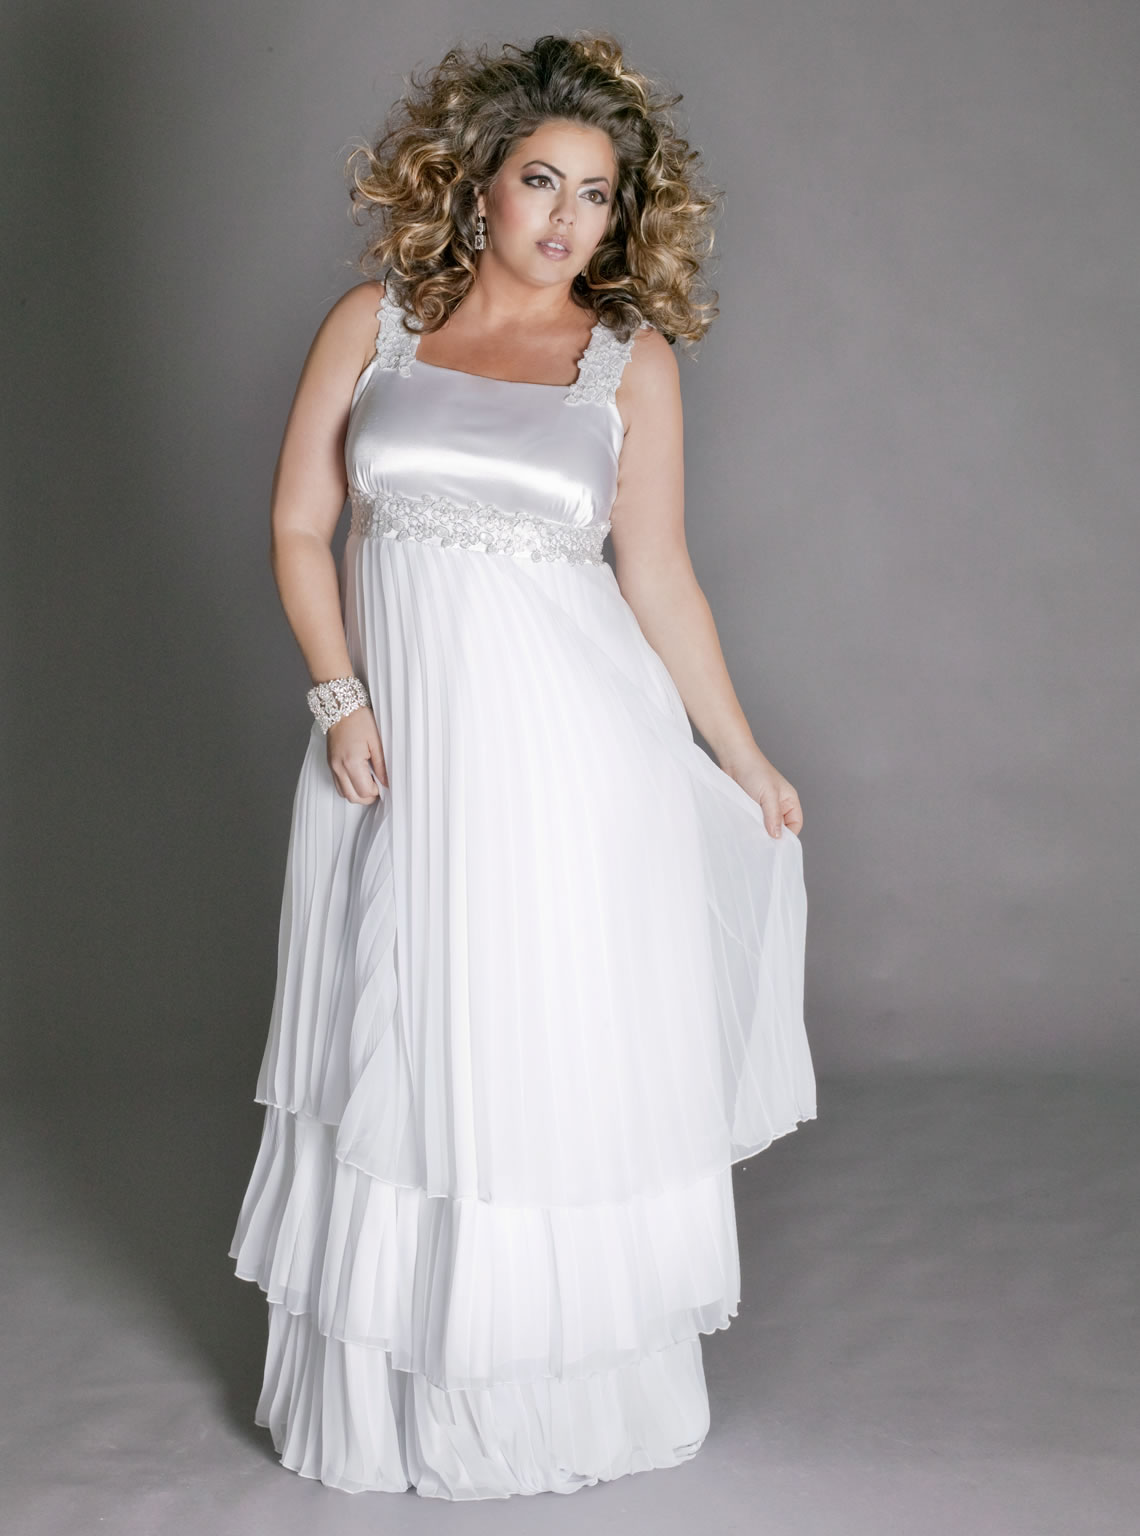 Maternity bridesmaid dresses dressed up girl for Plus size maternity wedding dresses